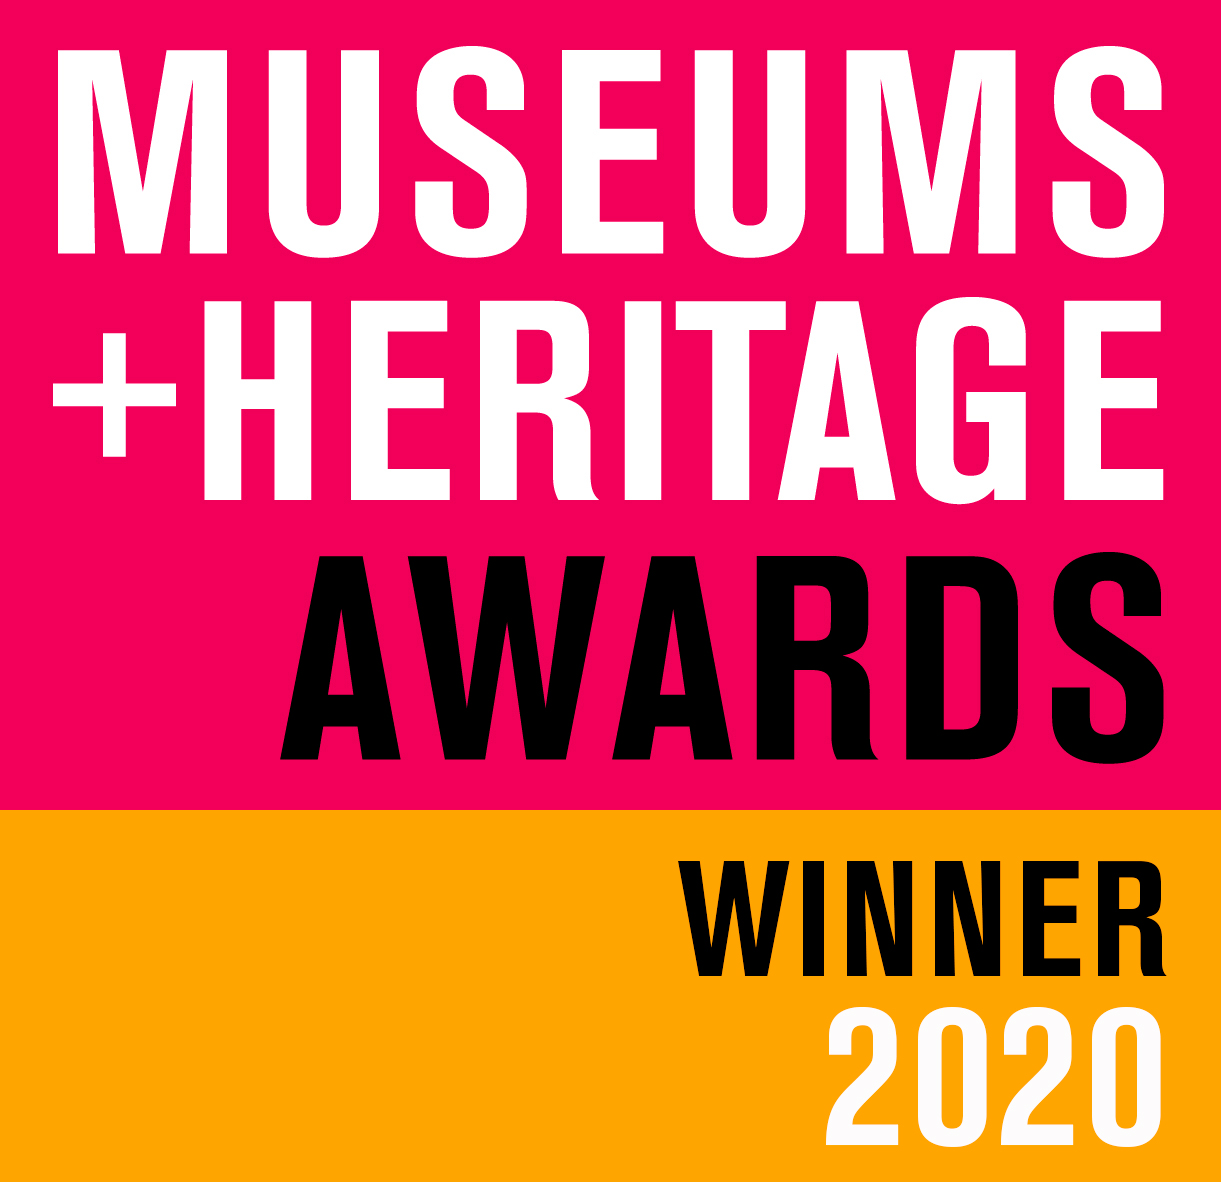 Museums and Heritage wards winner 2020 poster